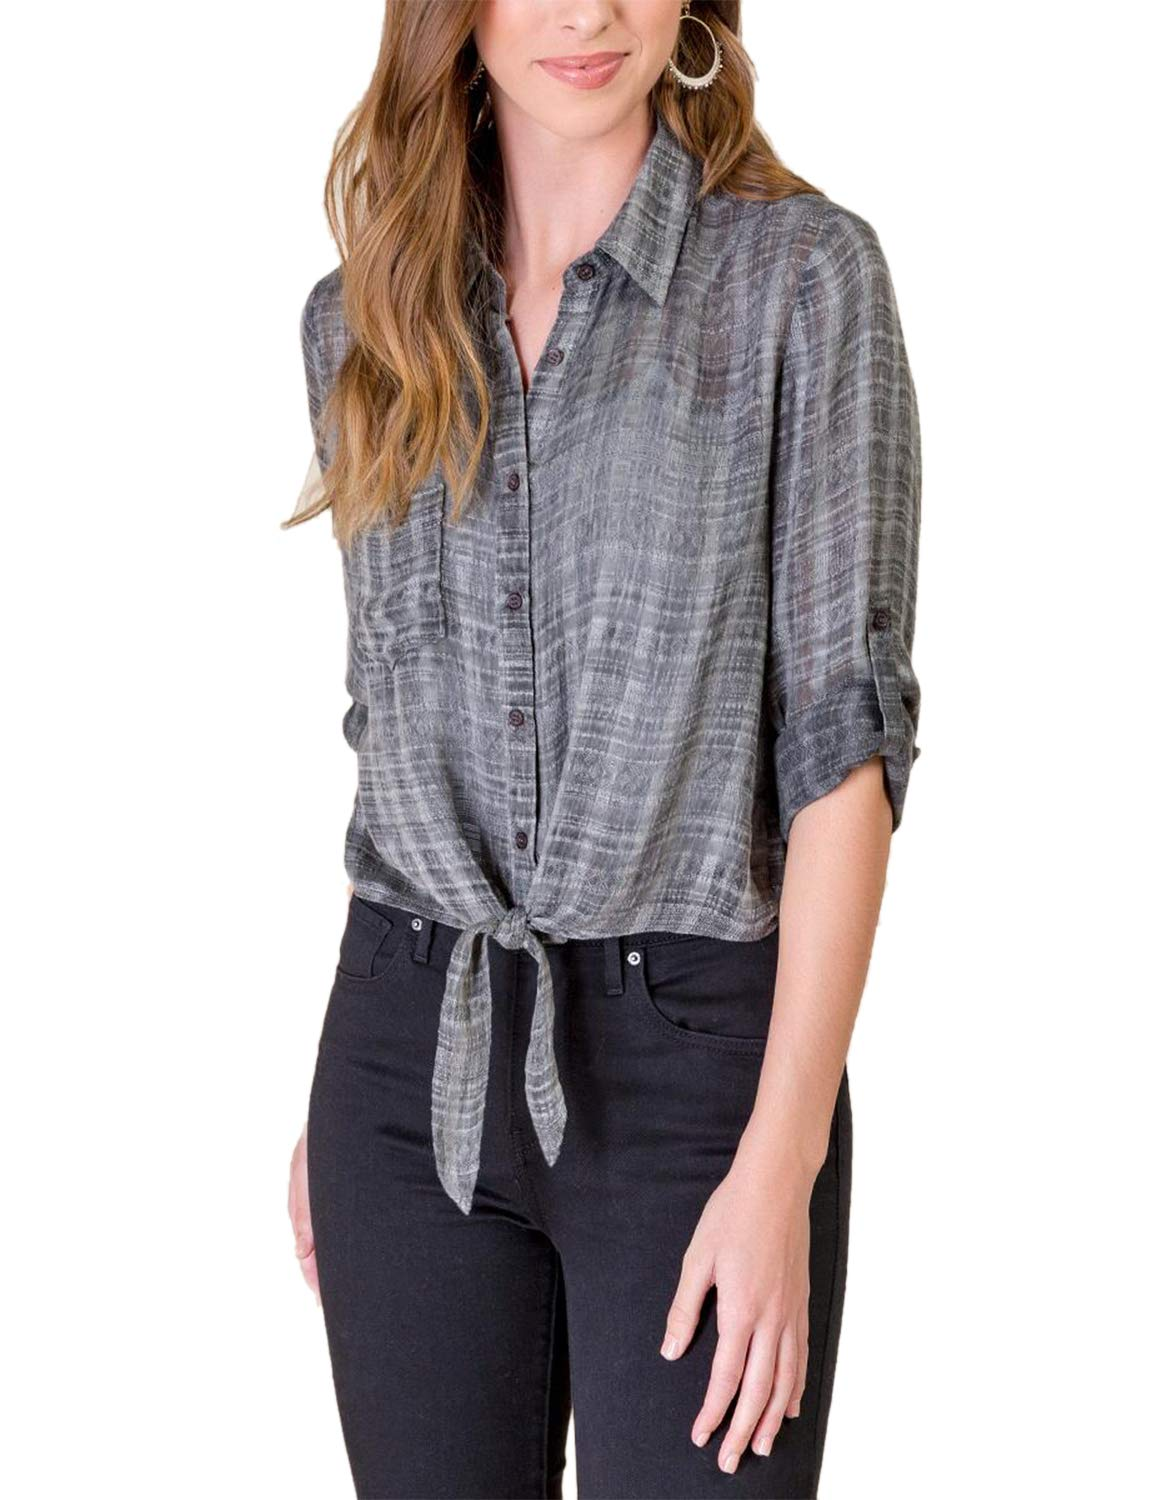 Blooming Jelly Women's Button Down Shirt Tie Knotted Top with Pocket Grey